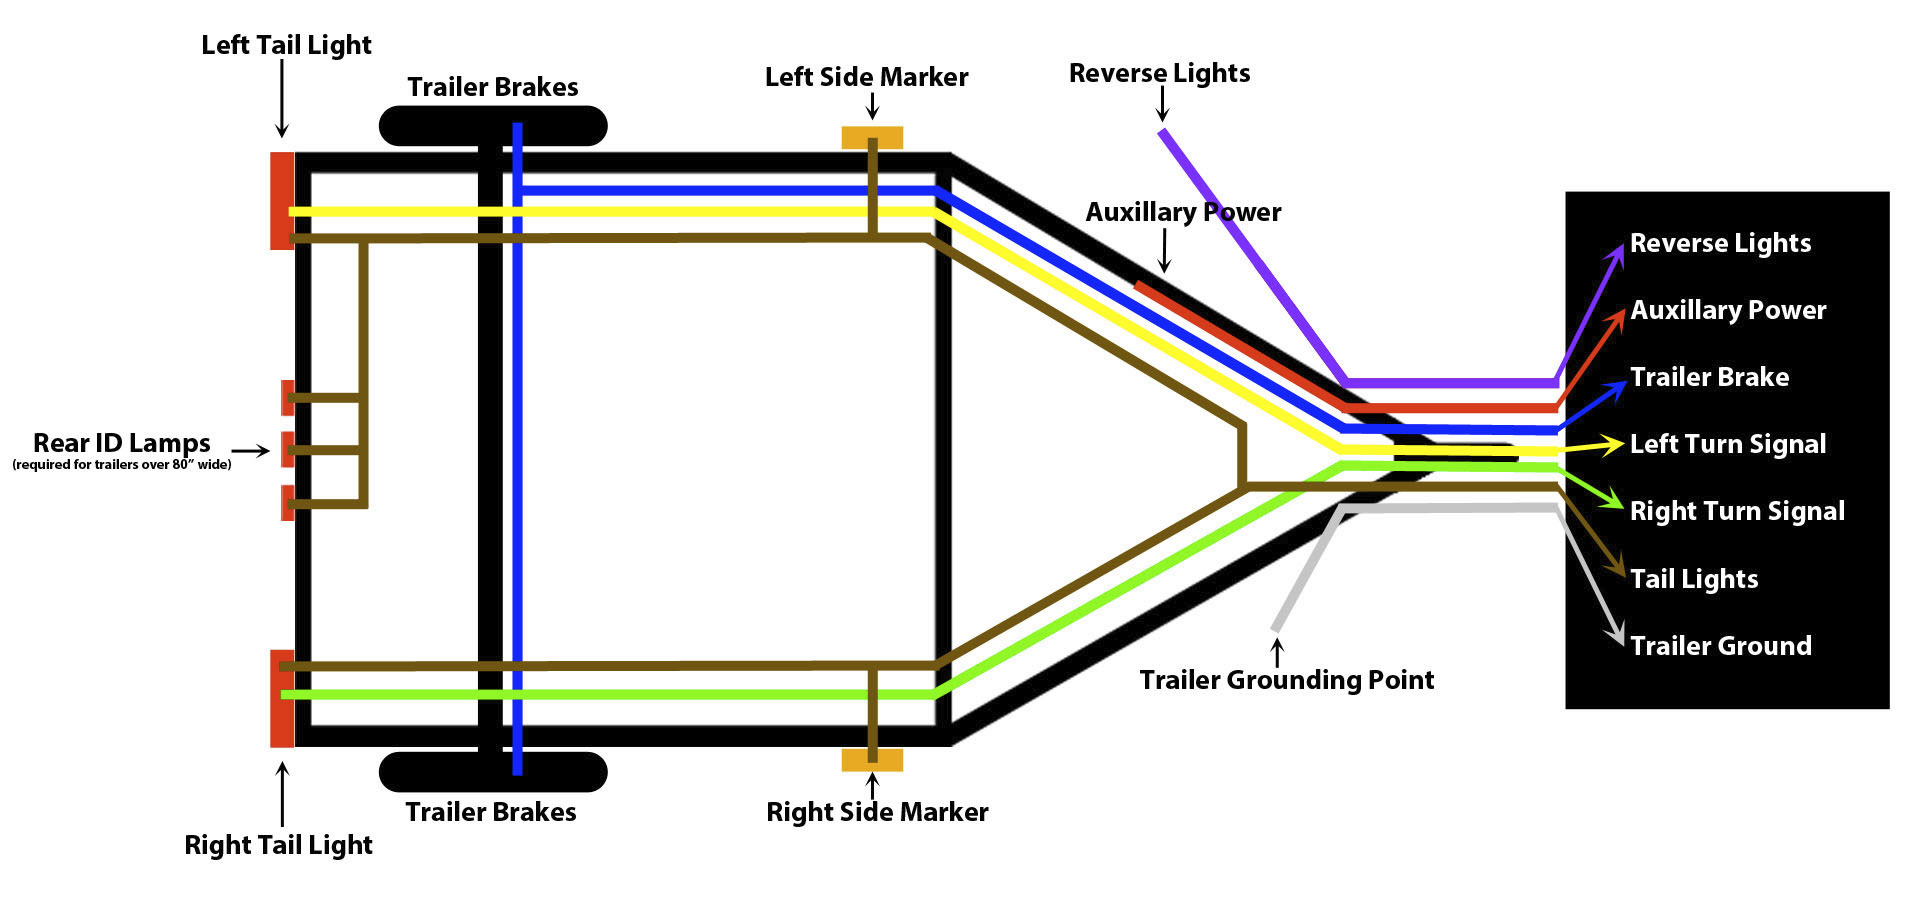 How To Wire Trailer Lights - Trailer Wiring Guide & Videos - 5 Wire Trailer Wiring Diagram